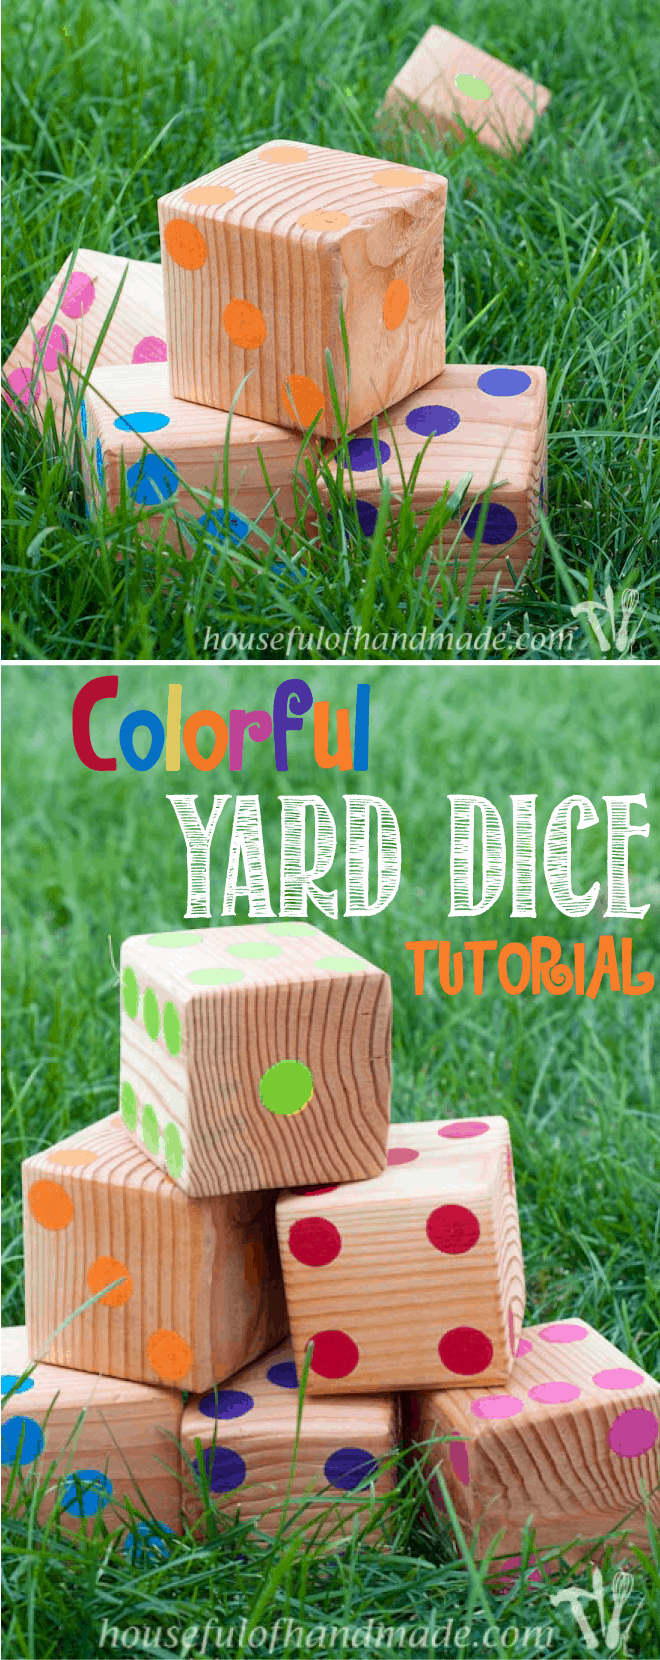 Make up a set of colorful yard dice to take to your next get together. Tutorial on Houseful of Handmade.